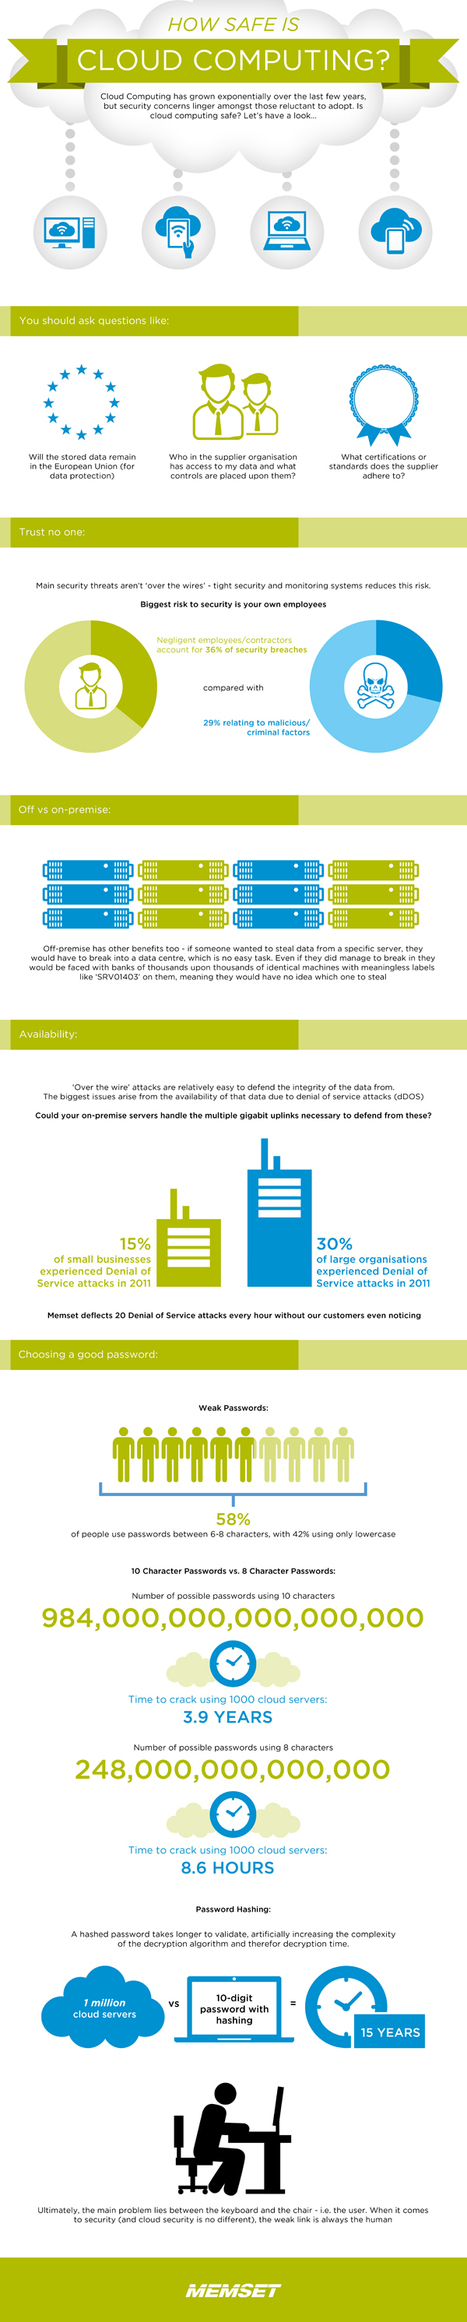 INFOGRAPHIC: How Safe is The Cloud? | Enterprise Social Media | Scoop.it